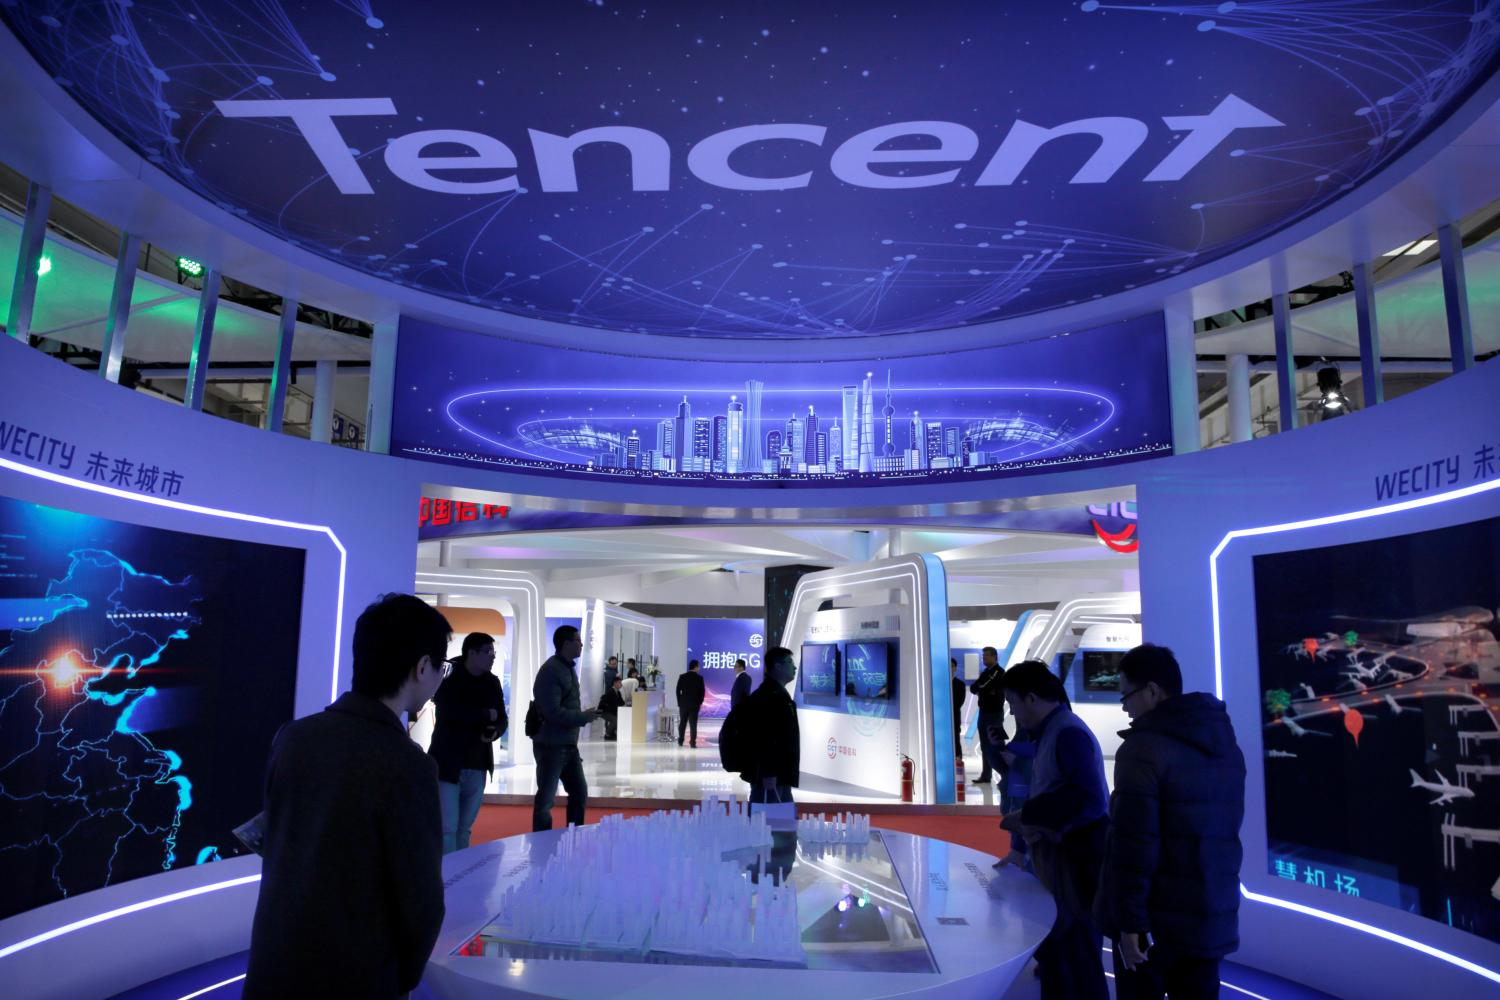 People visit Tencent's booth at the World 5G Exhibition in Beijing. The company just acquired Iflix streaming service. REUTERS